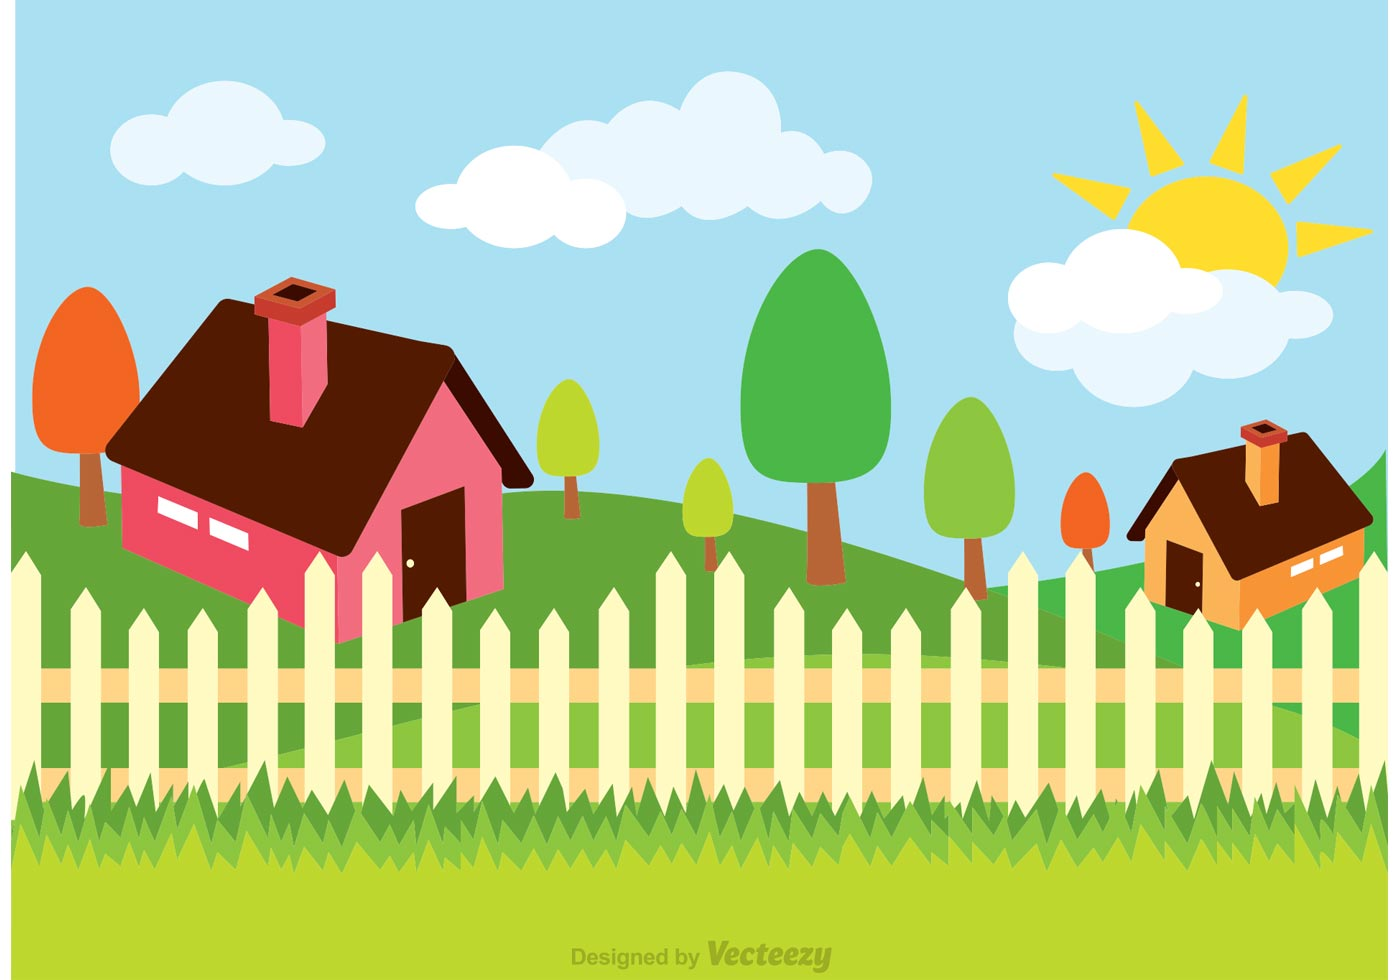 House Illustration Vector Download Free Vector Art